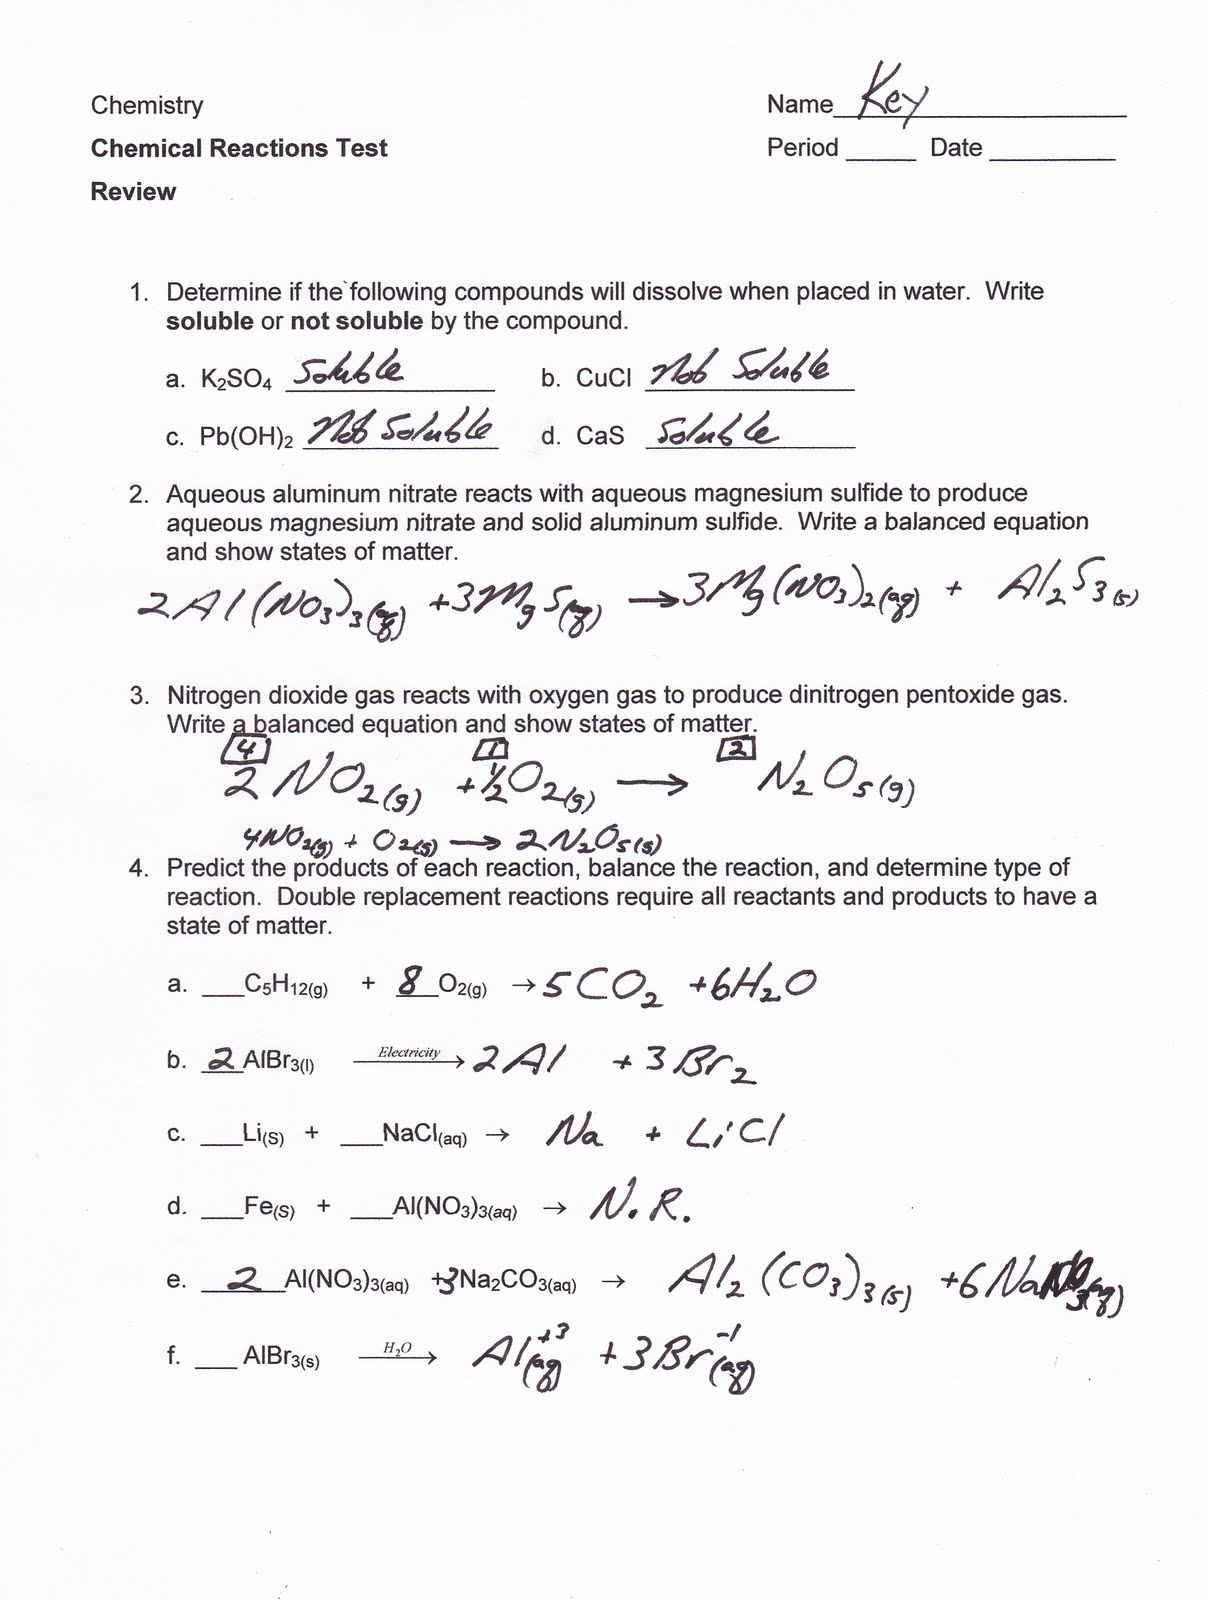 Worksheets 11 Chemical Reactions Answer Key mr brueckners chemistry class hhs 2011 12 for those of you experiencing a little difficulty on the balancing chemical reactions worksheet i have some advice possible sticking point